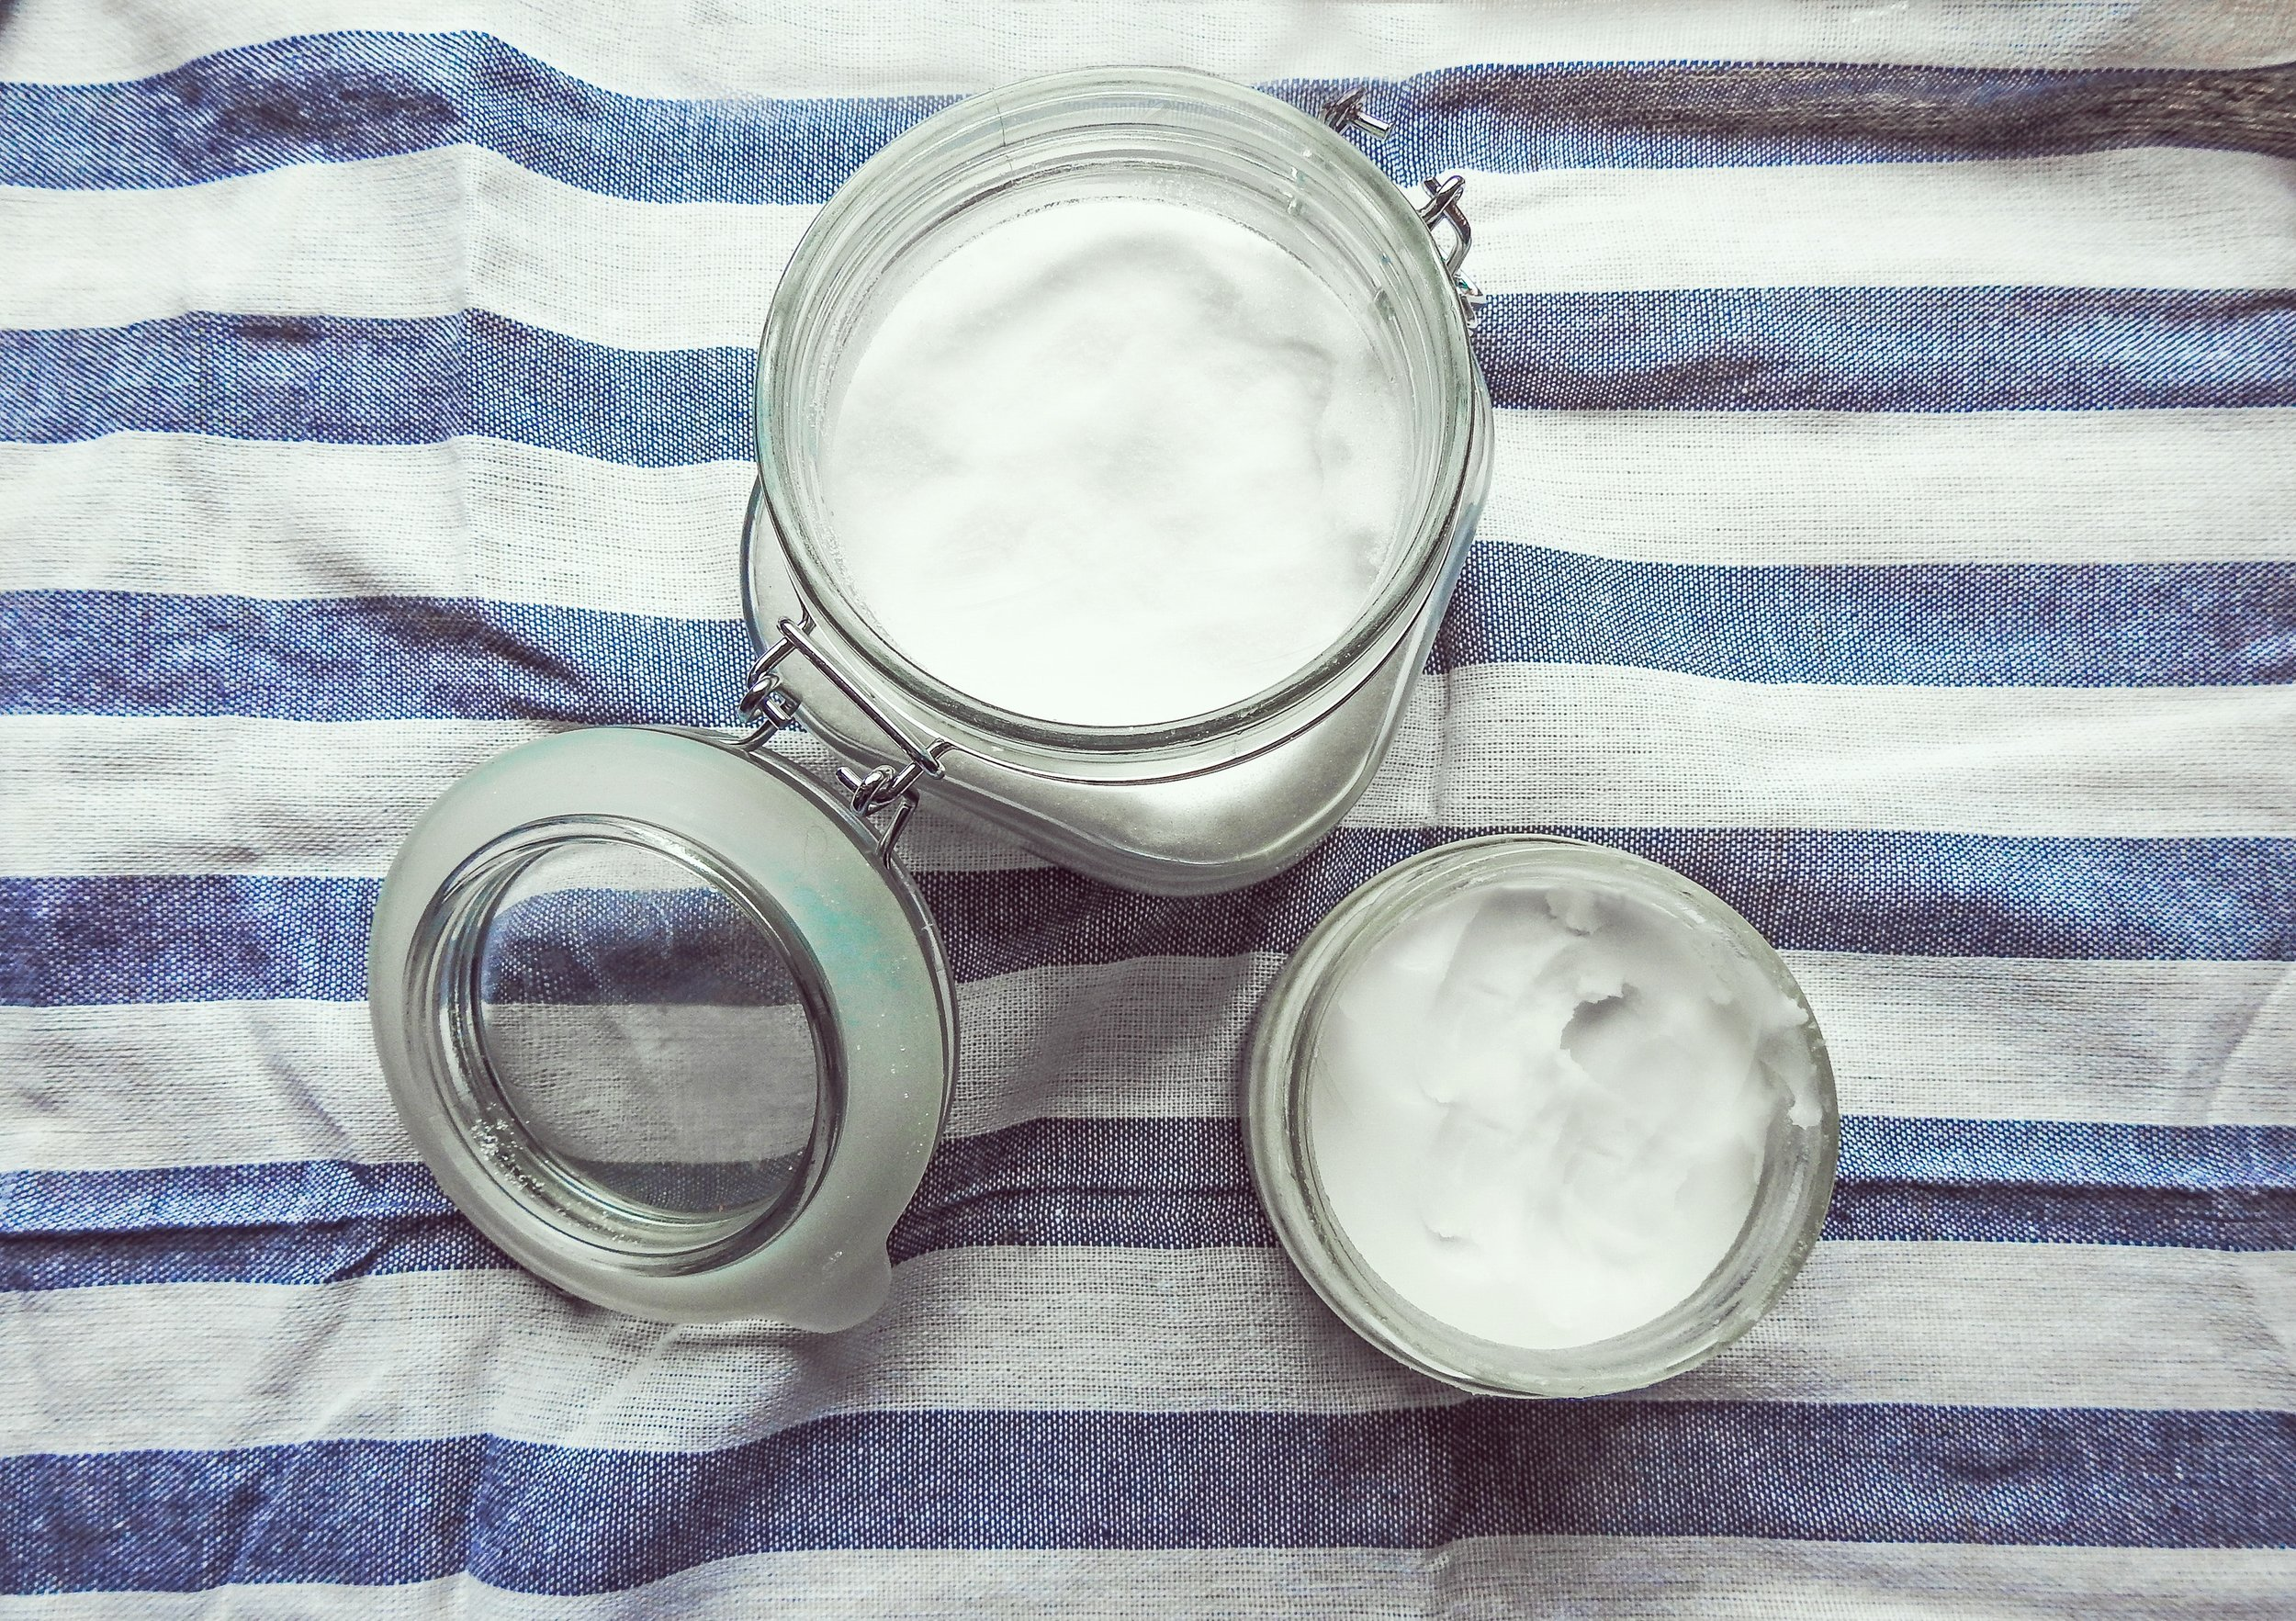 clear glass airlock container with yogurt